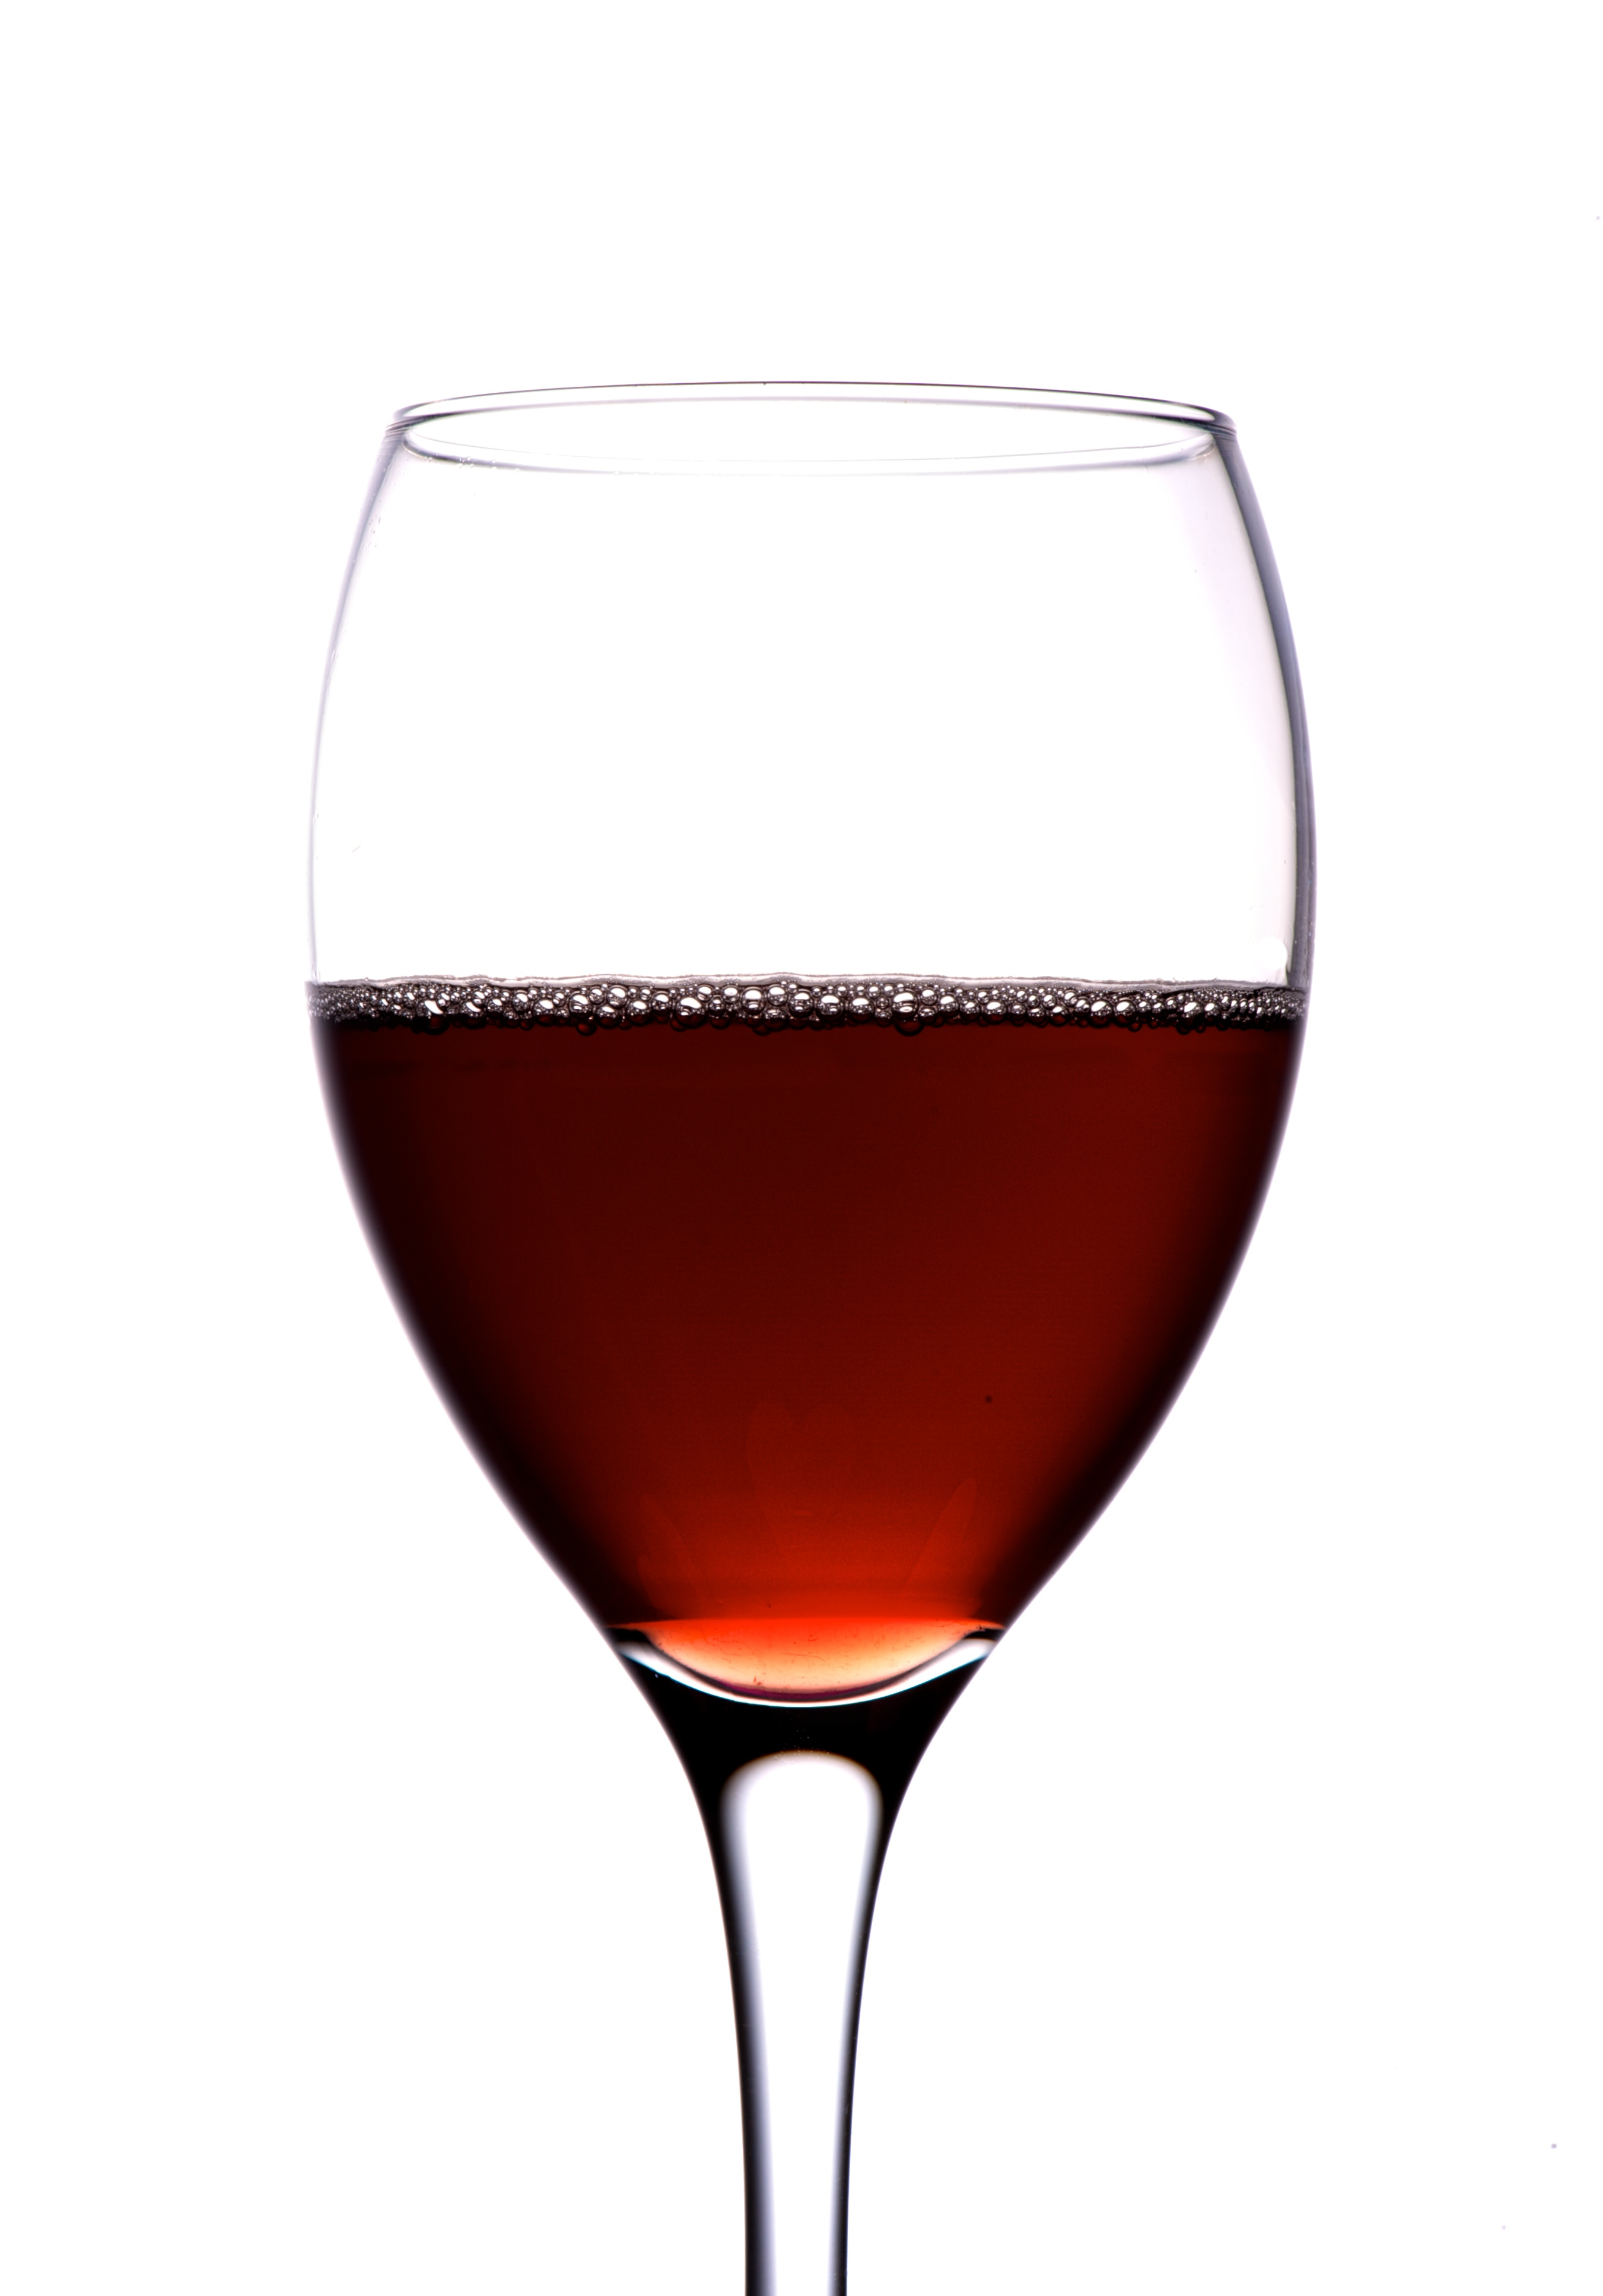 Cardiac Benefits of Red Wine Not From the Alcohol